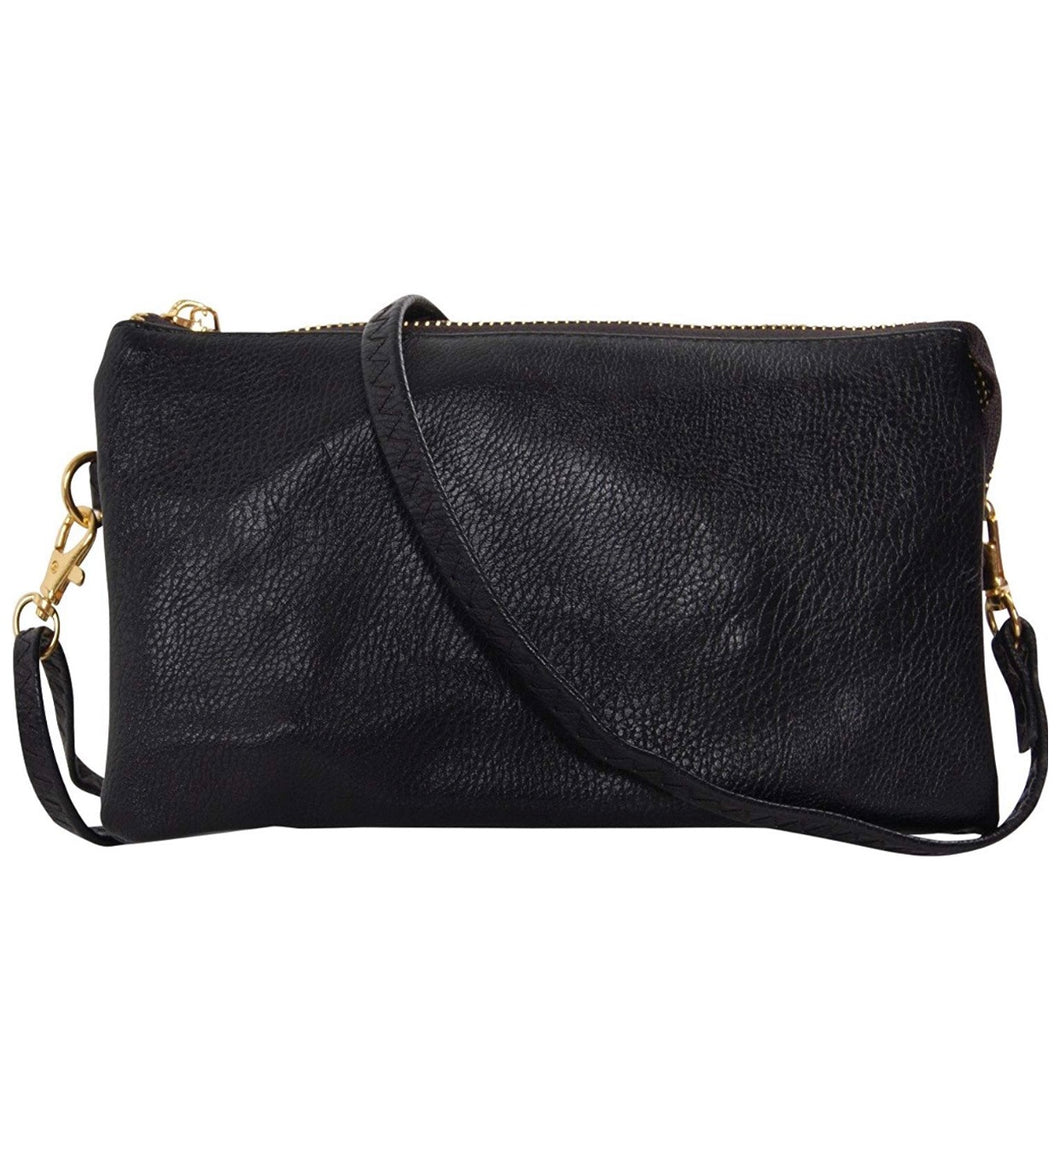 Black Wristlet or Cross Body Purse